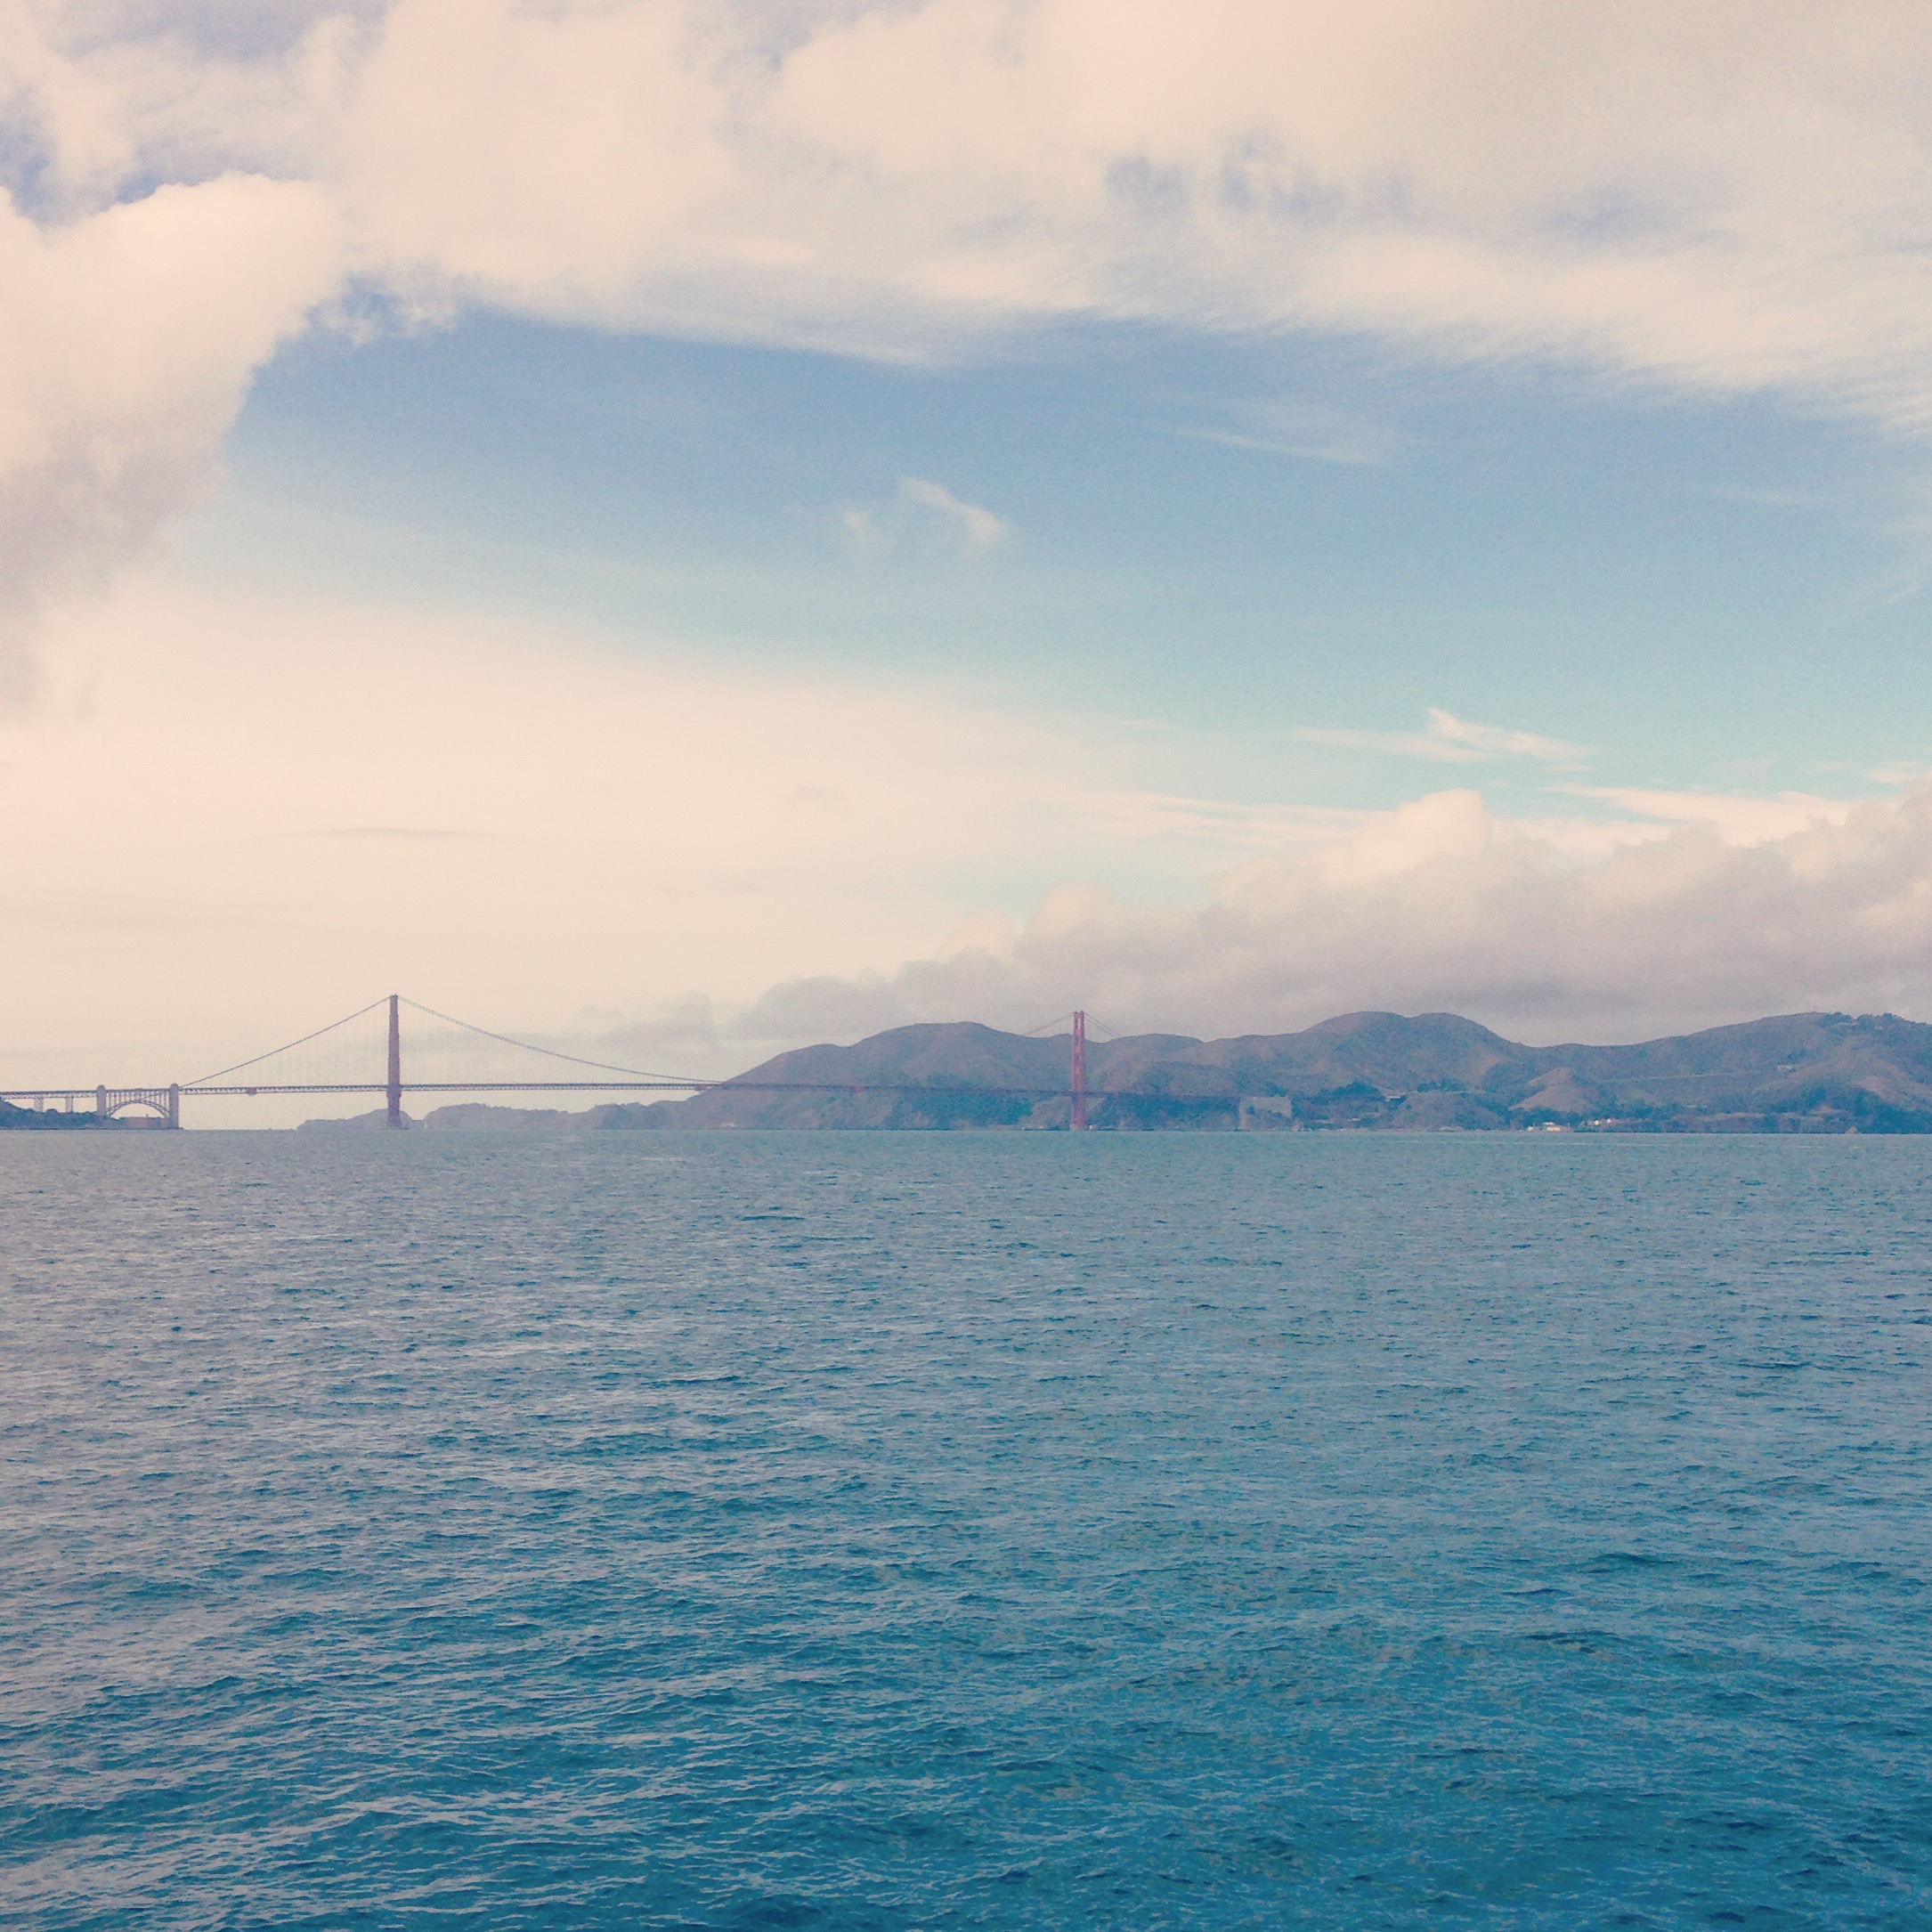 Another one of those backyard-golden-gate shots. Seriously, it never gets old.